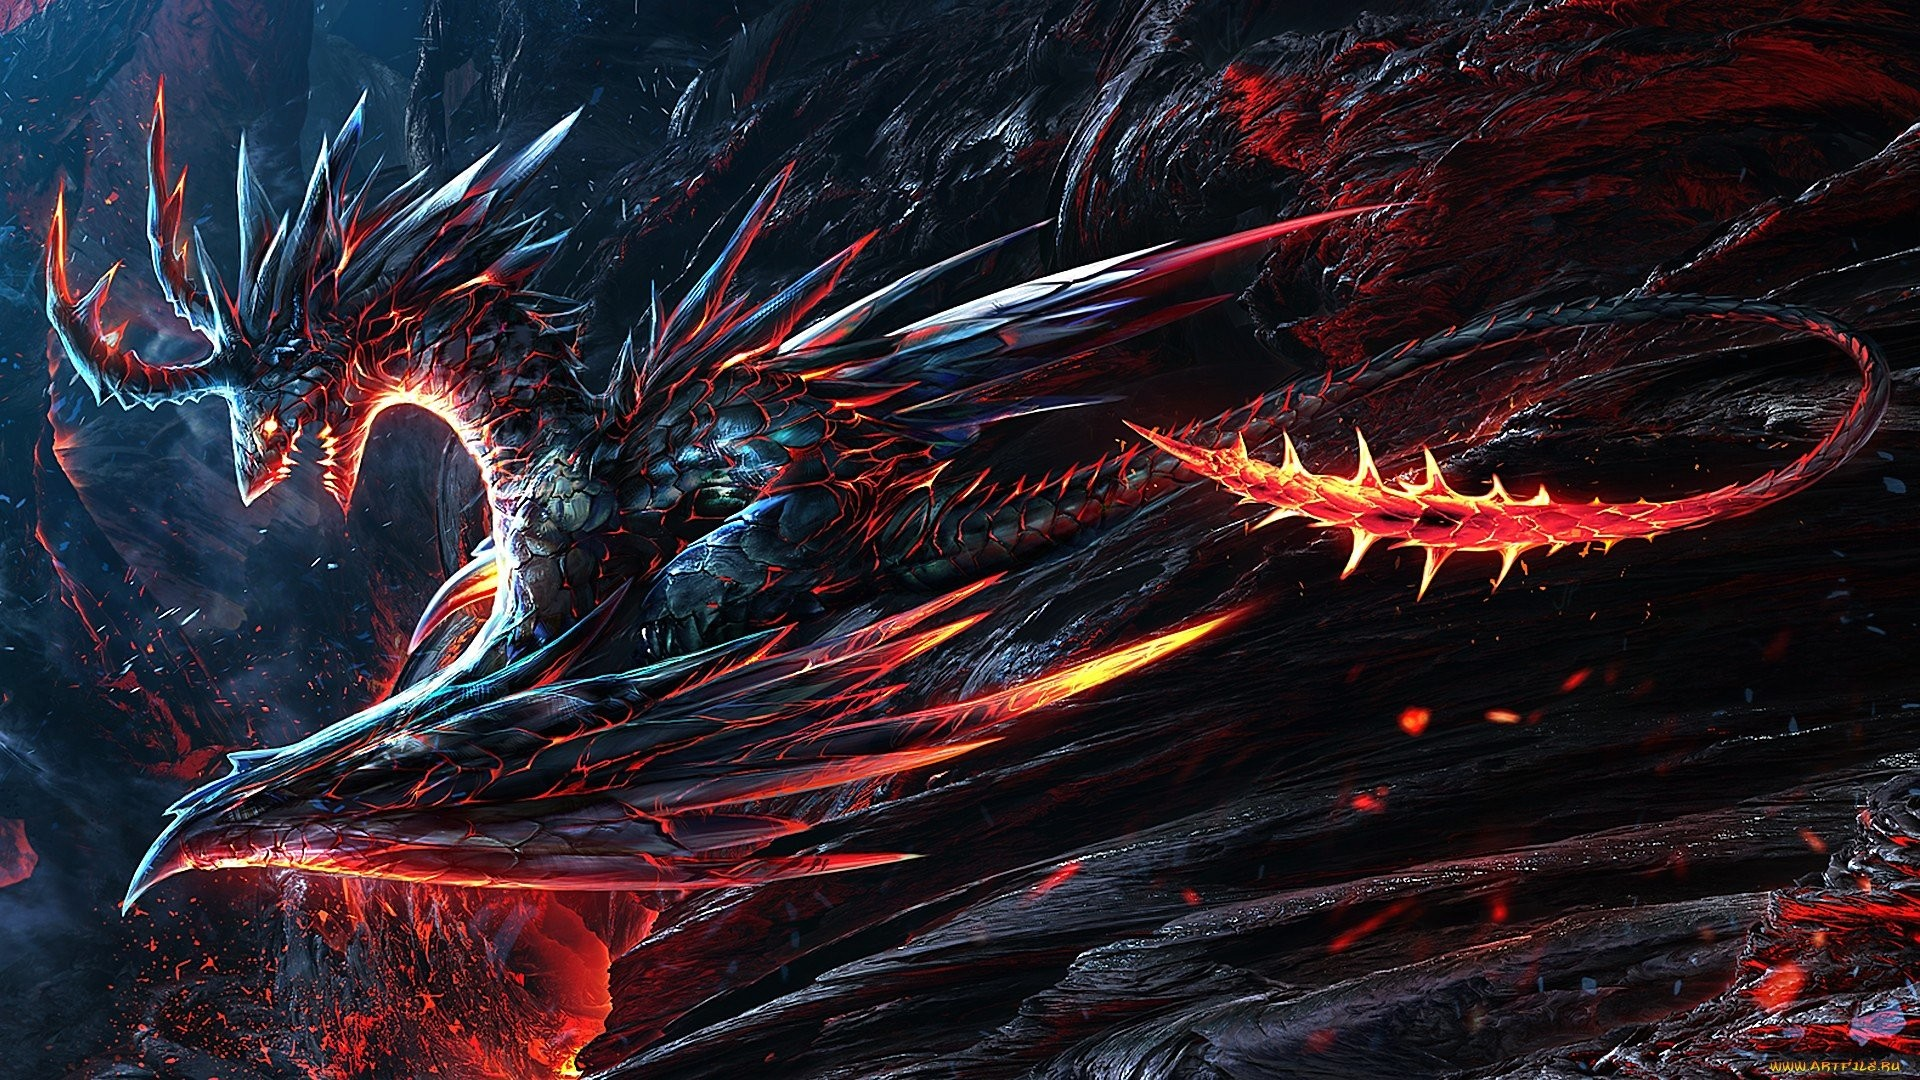 Lava Dragon Wallpapers   Lava Dragon Wallpapers   Pinterest   Lava and  Dragons